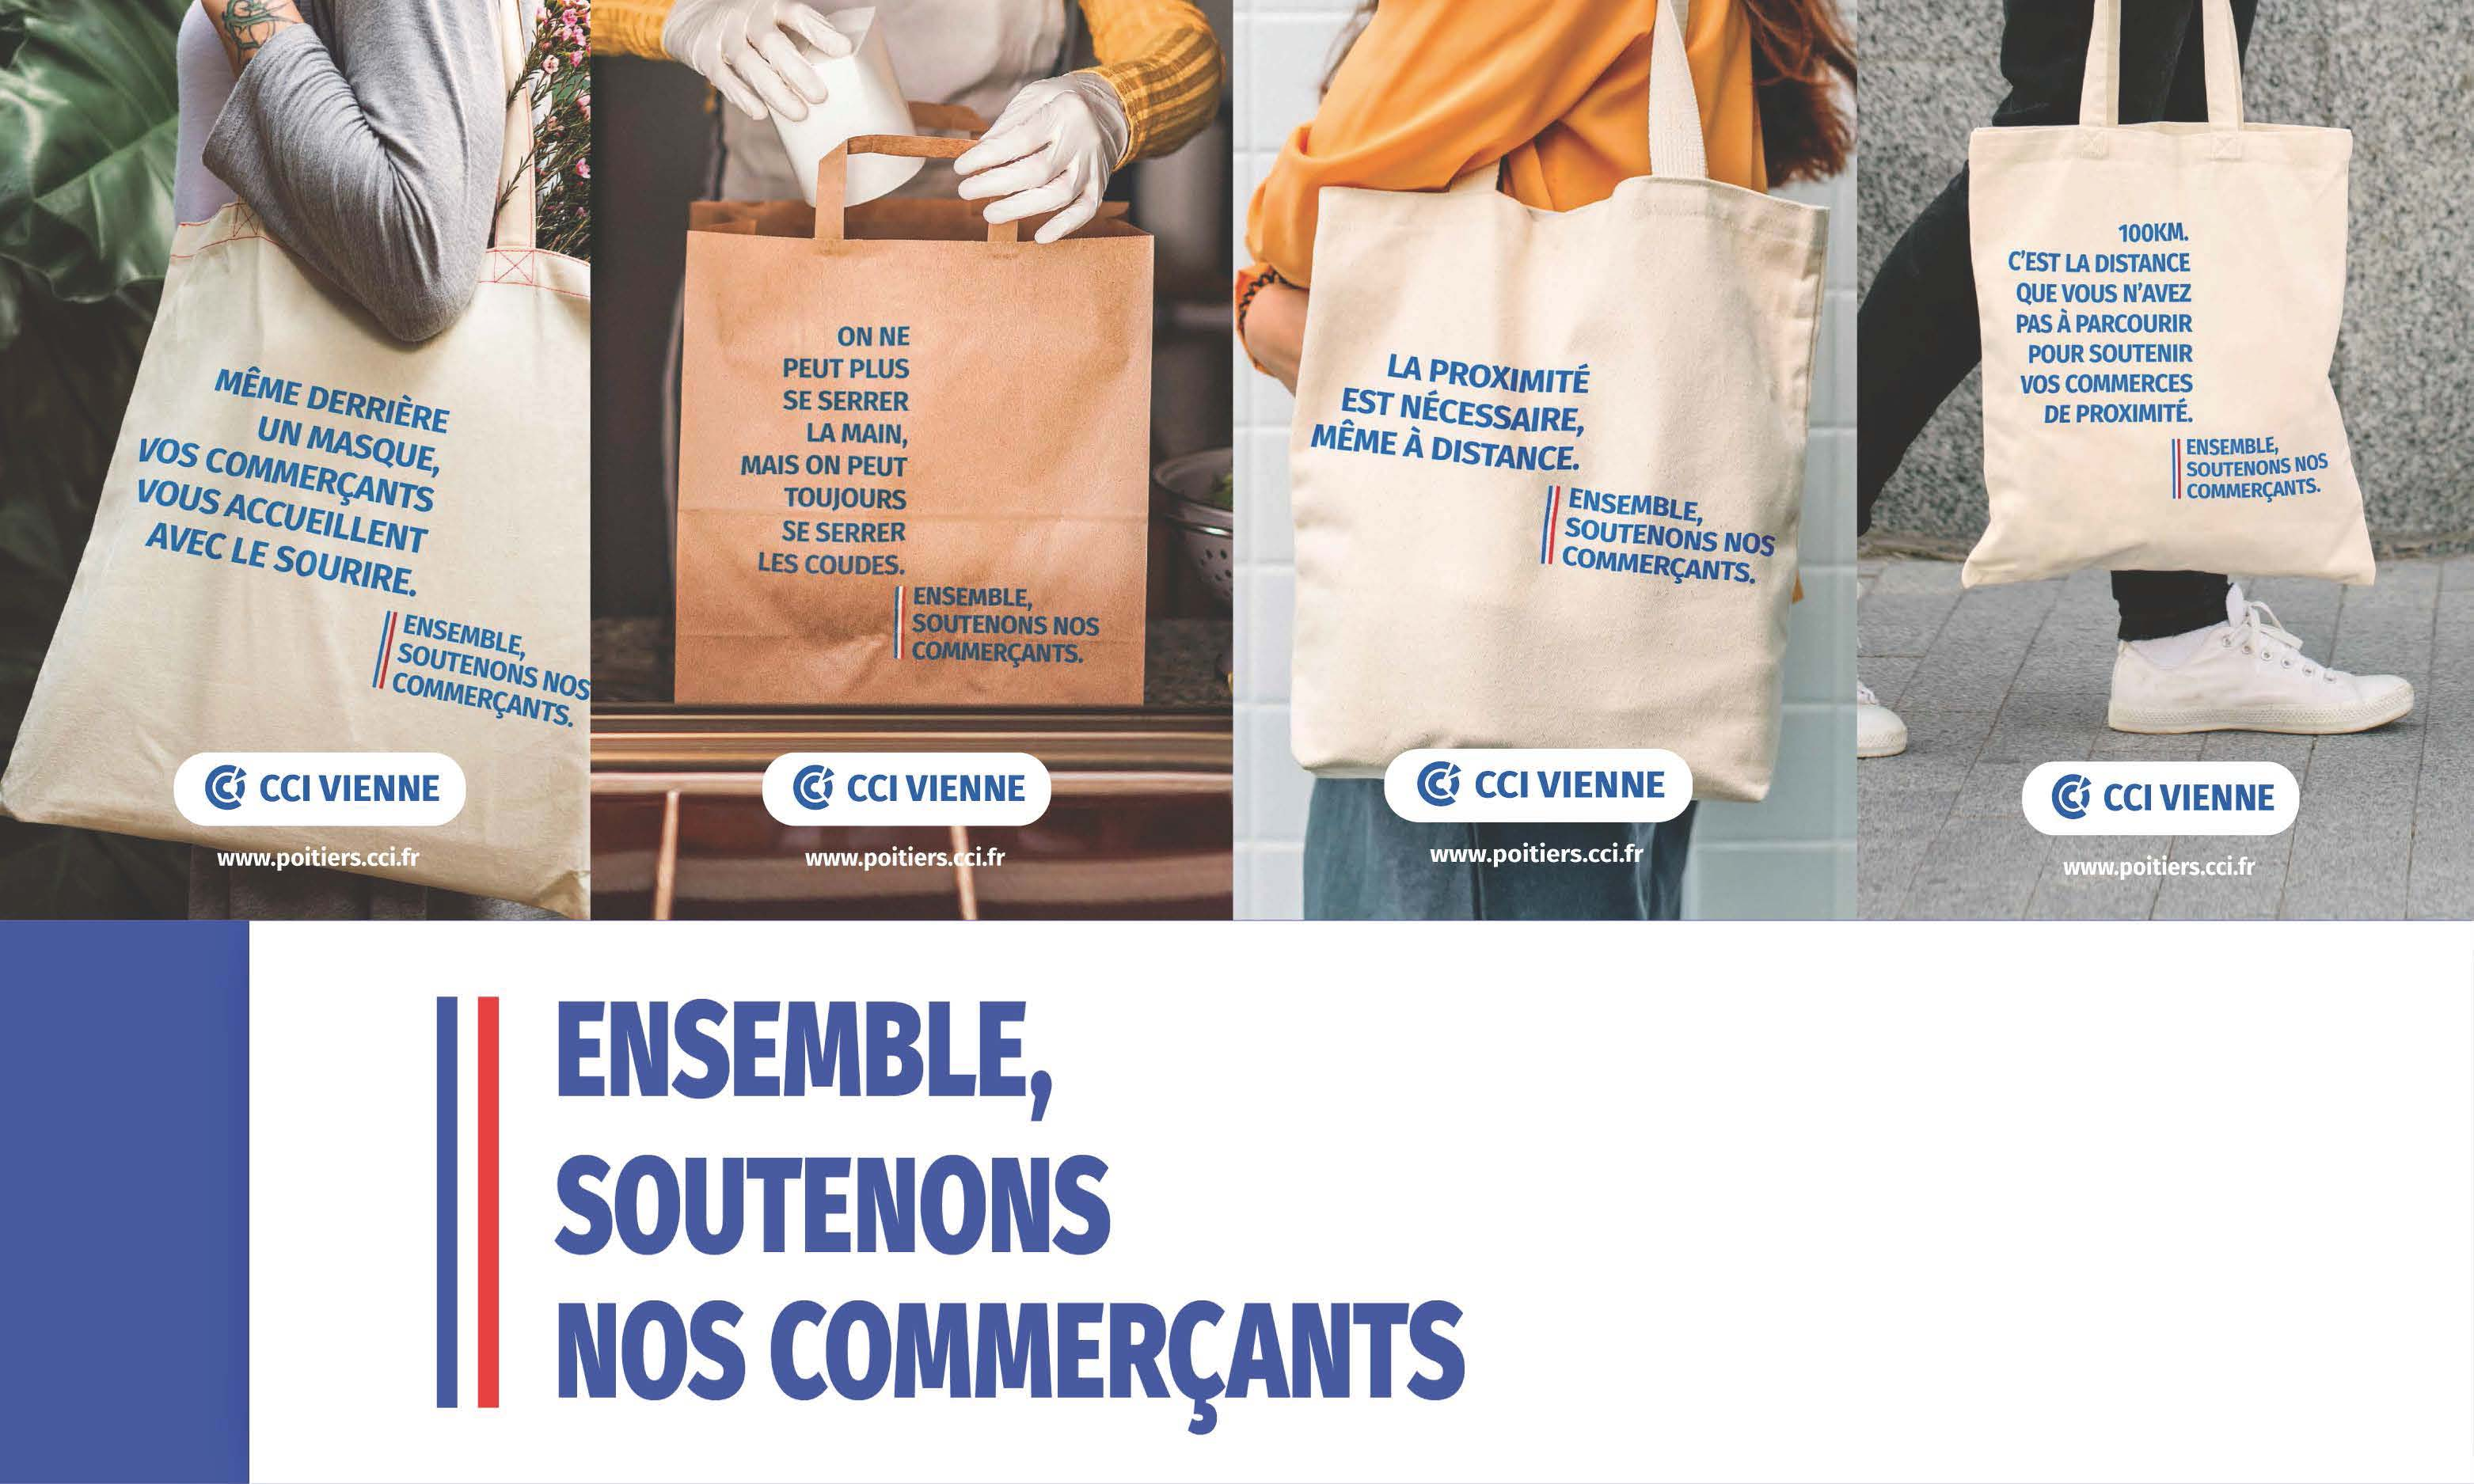 Soutenons nos commerçants